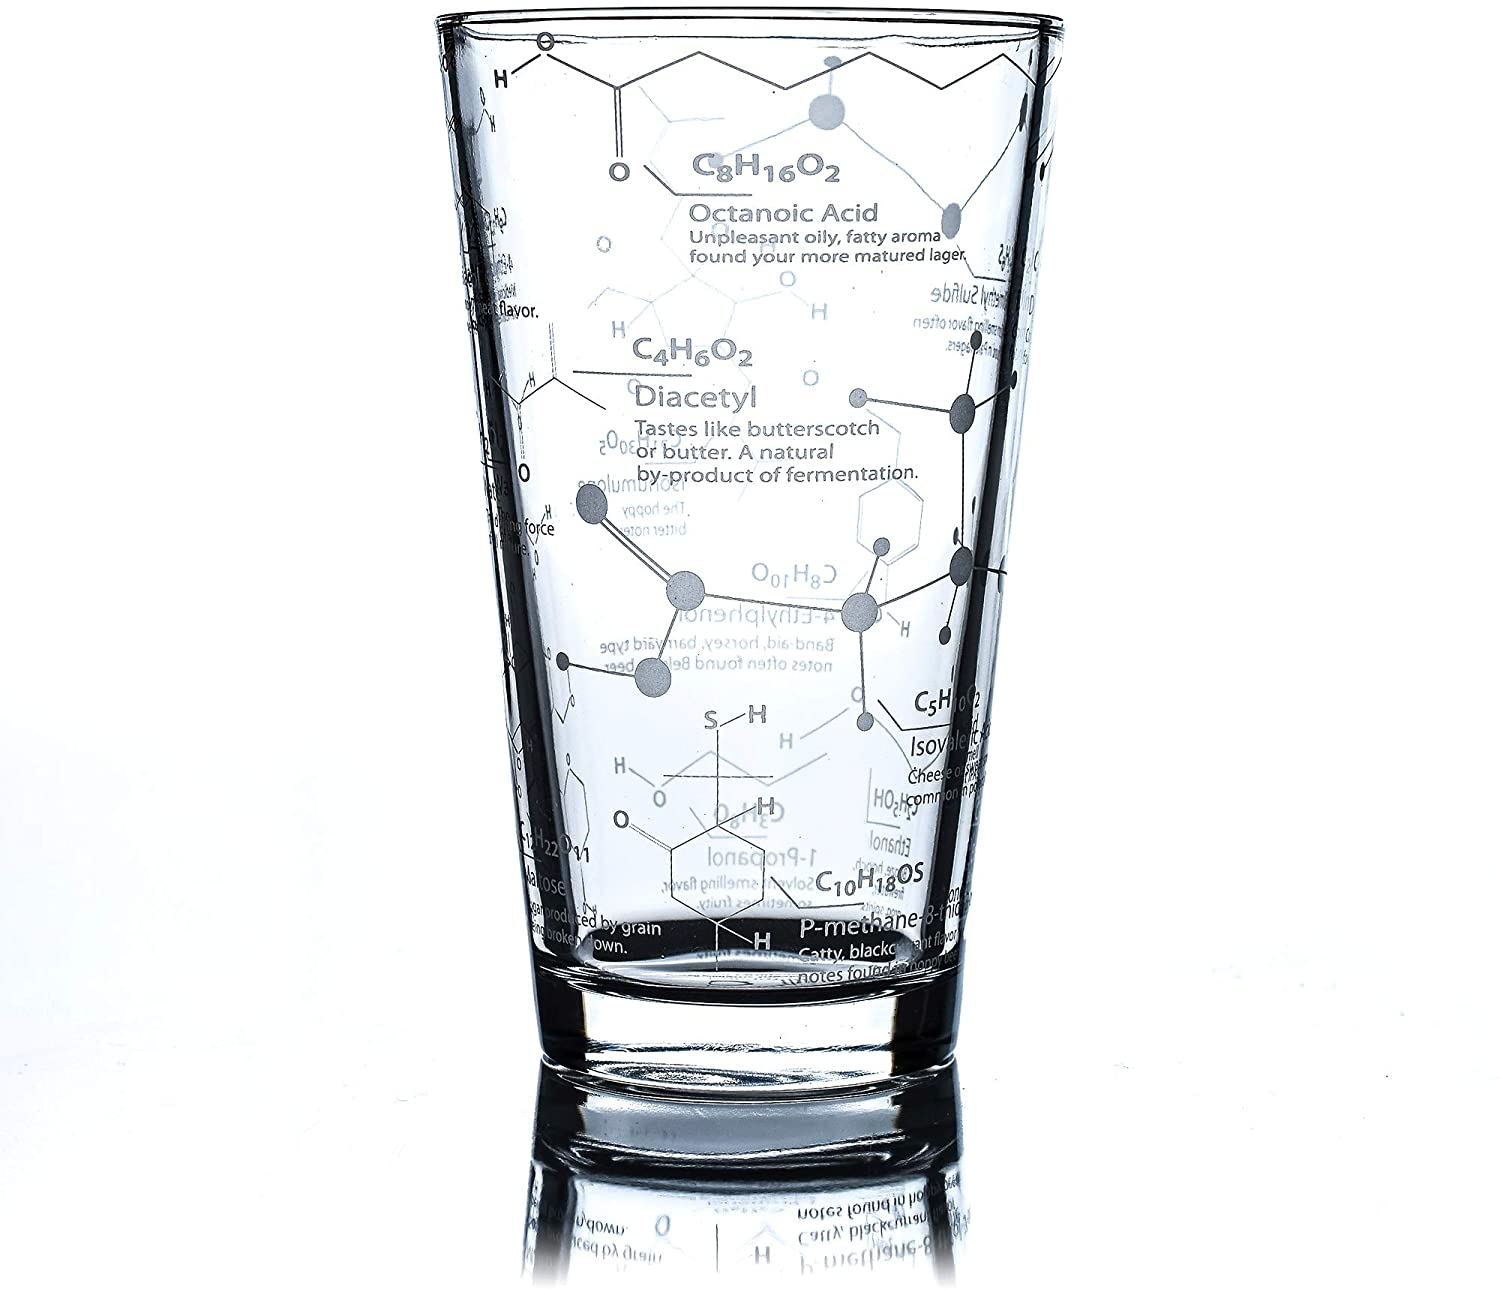 Greenline Goods Beer Glasses - 16 oz Pint Glass (1 Glass) – Science of Beer Glassware - Etched with Beer & Hops Chemistry Molecules